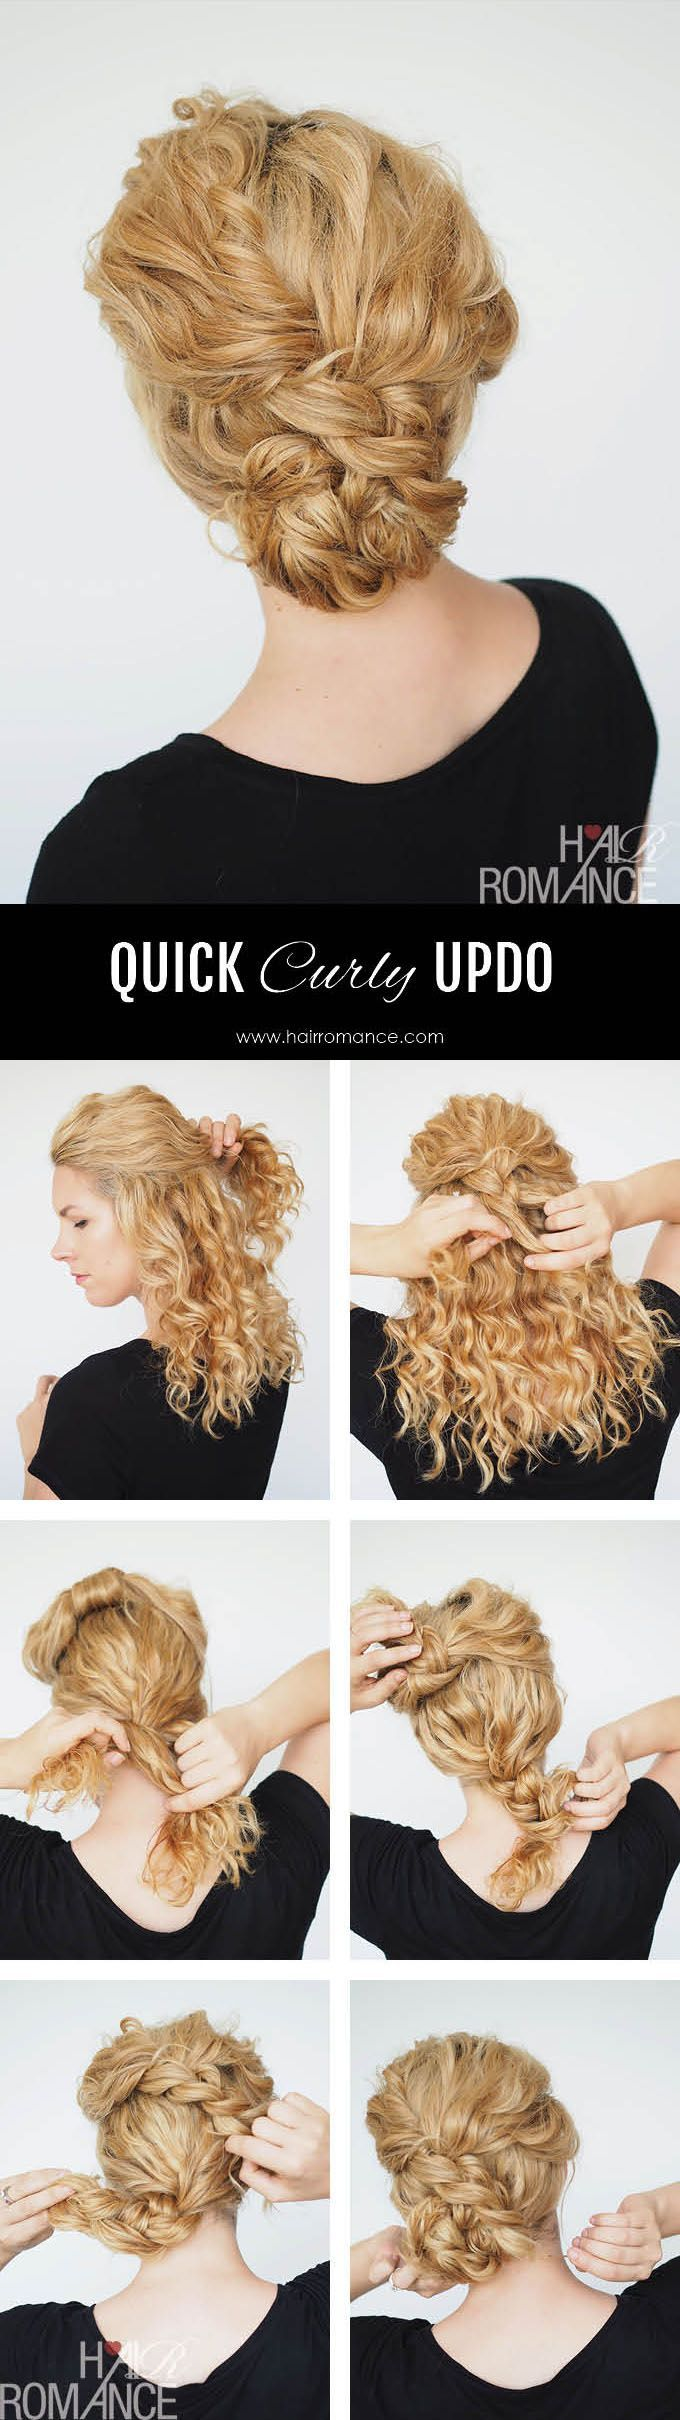 awesome 2 min updo for curly hair (Hair Romance) by http://www.dana-hairstyles.xyz/natural-curly-hair/2-min-updo-for-curly-hair-hair-romance/